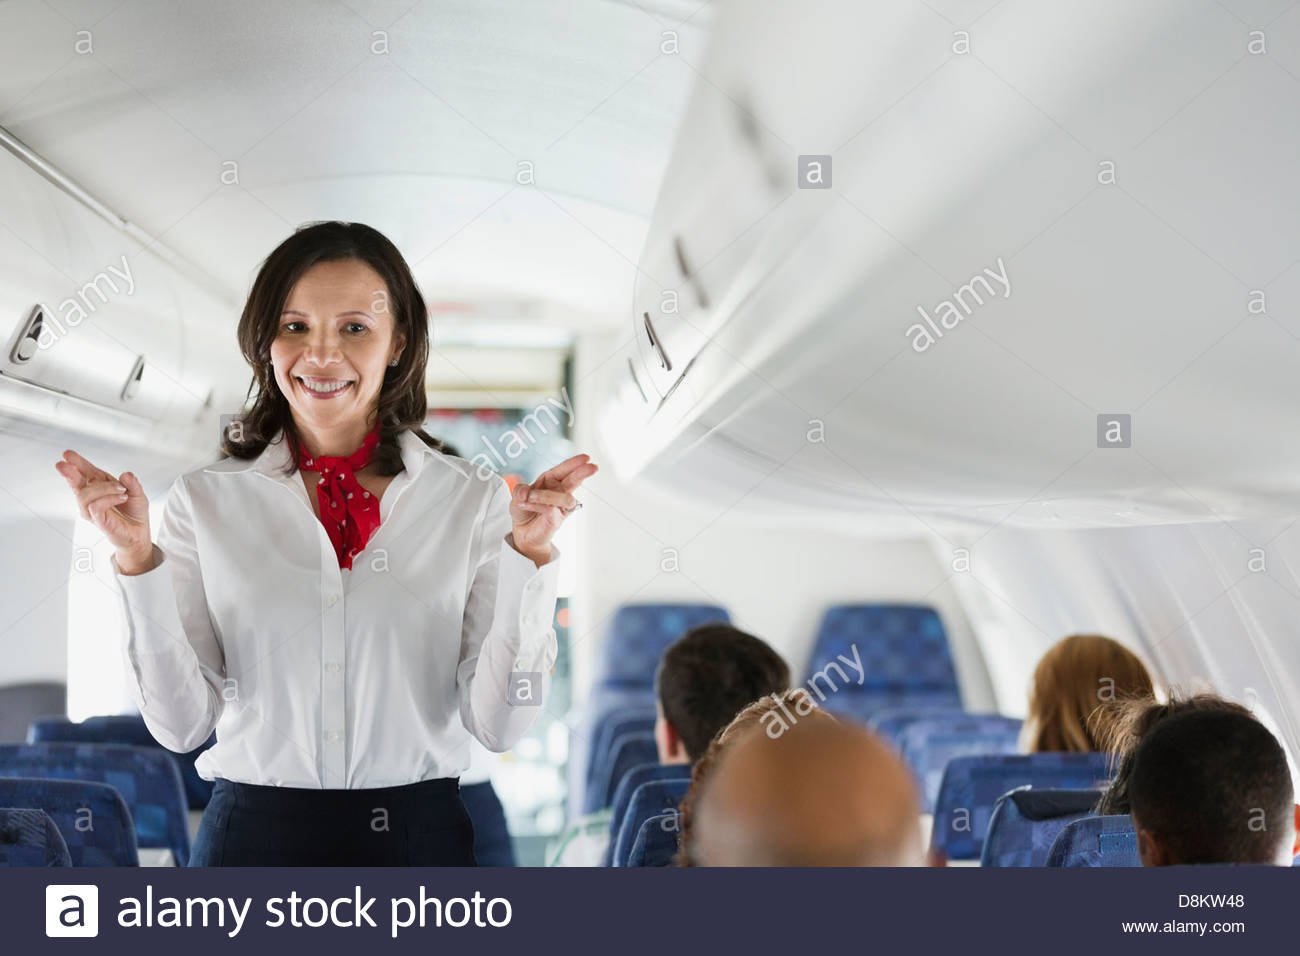 Flight attendant indicating exits in airplane - Stock Image